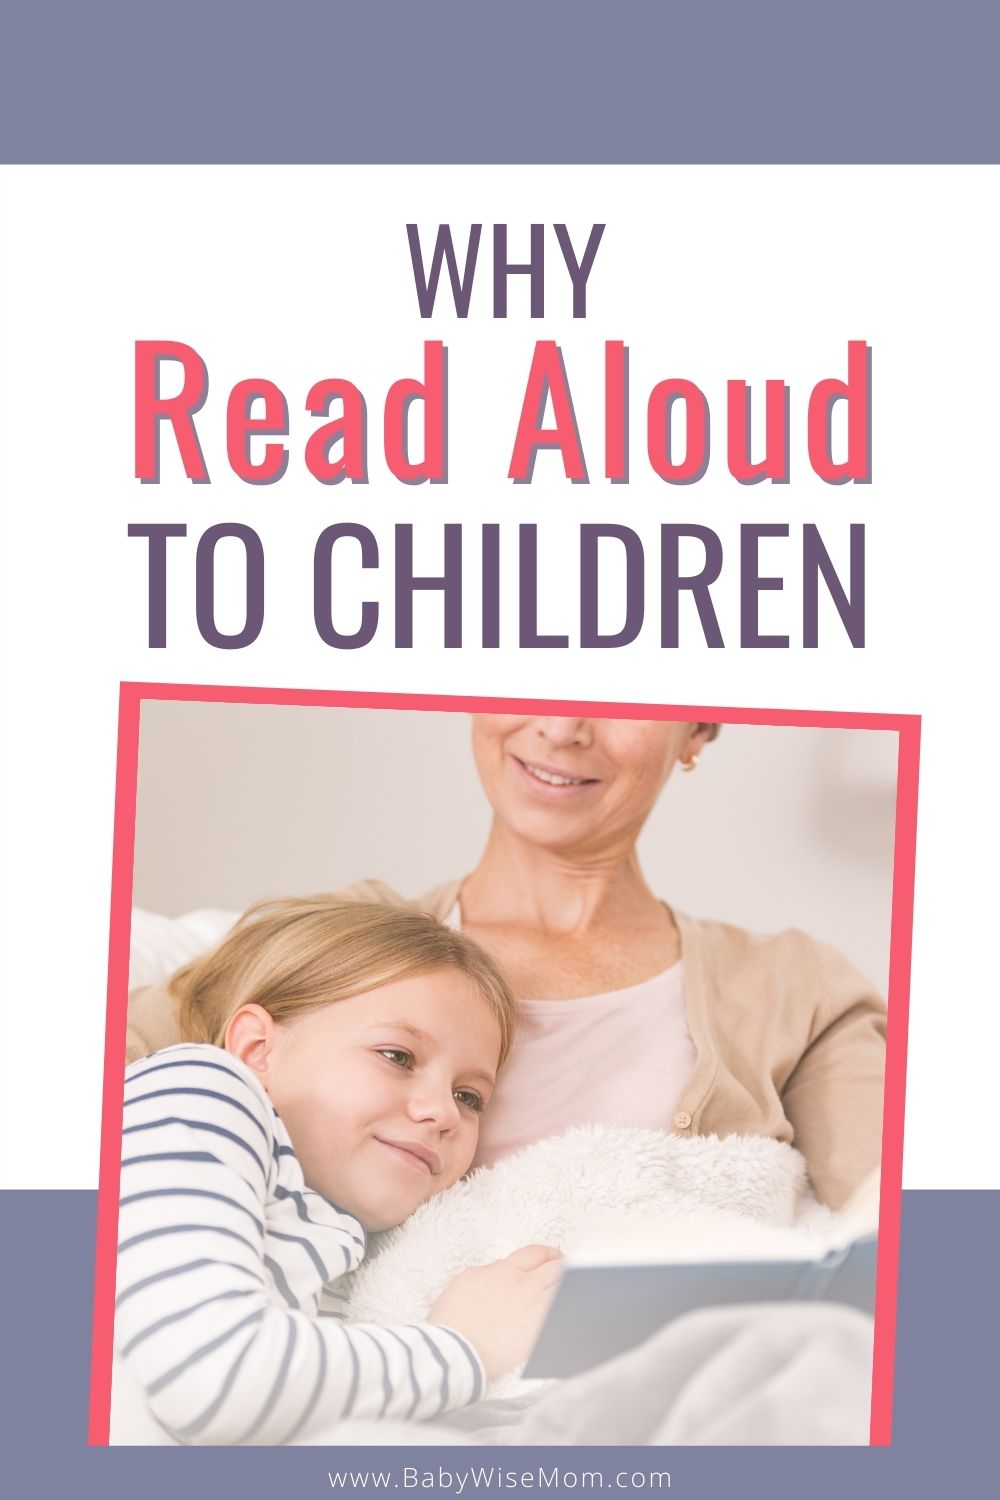 Why read aloud to children